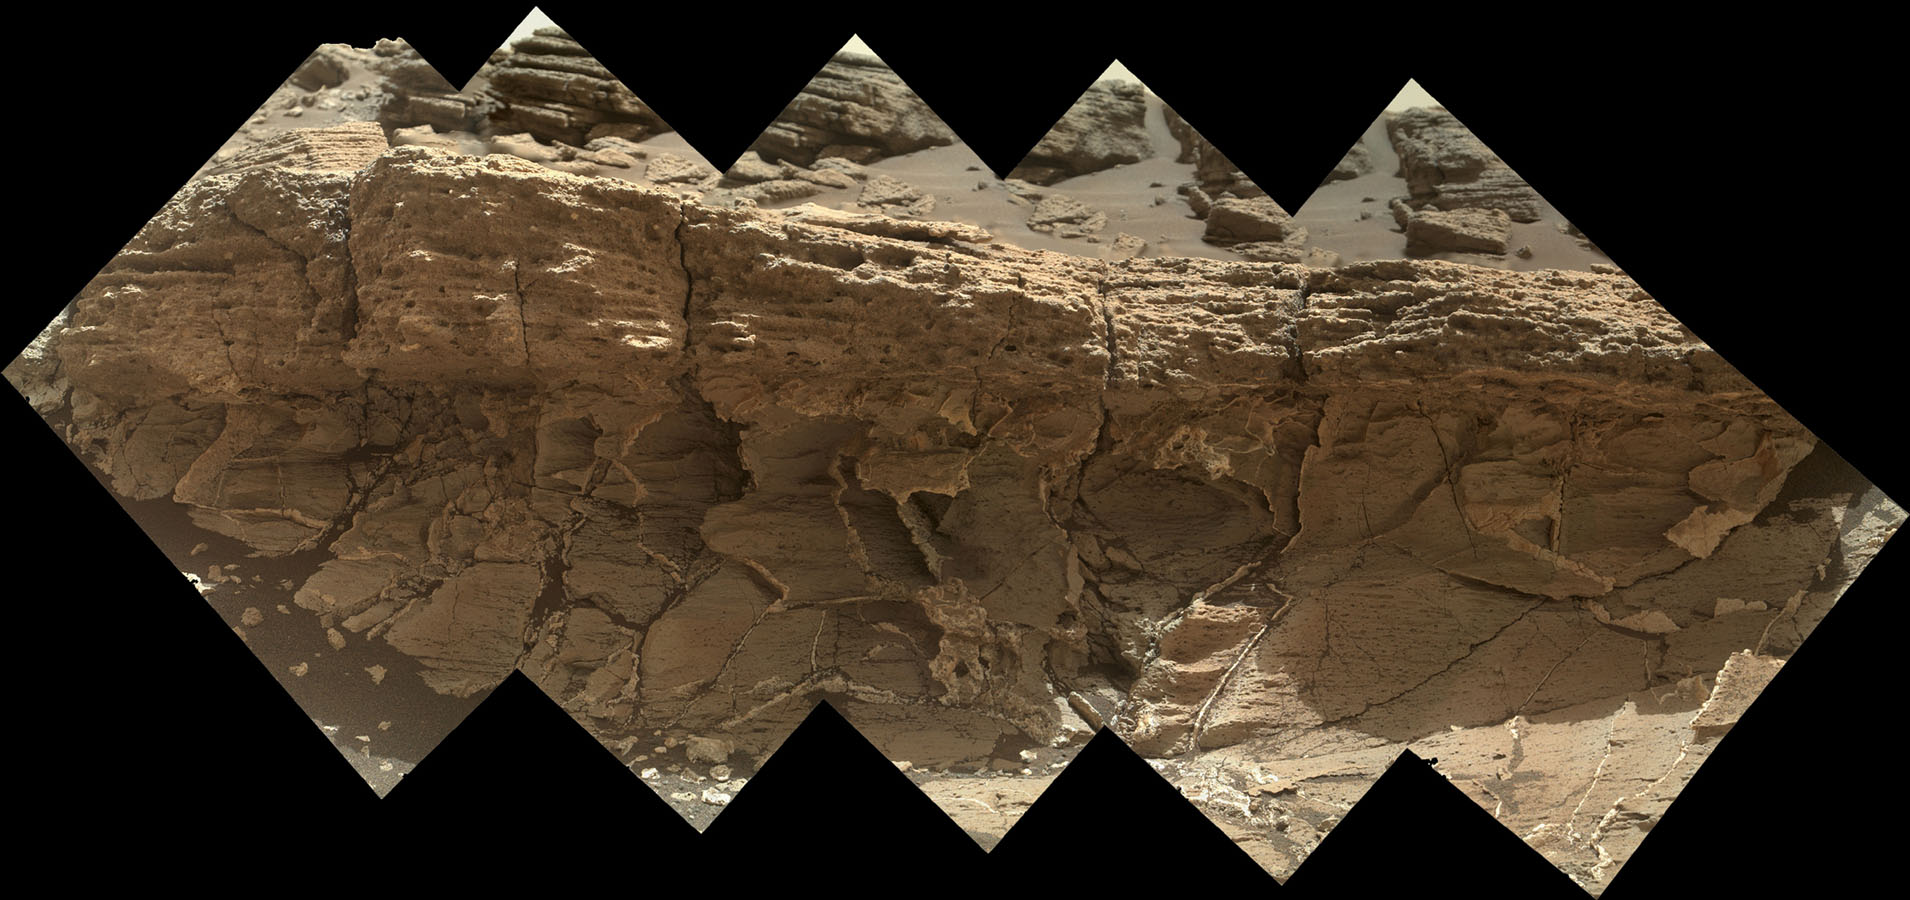 A rock outcrop dubbed 'Missoula,' near Marias Pass on Mars, is seen in this image mosaic taken by NASA's Curiosity rover. Pale mudstone (bottom of outcrop) meets coarser sandstone (top) in this geological contact zone.